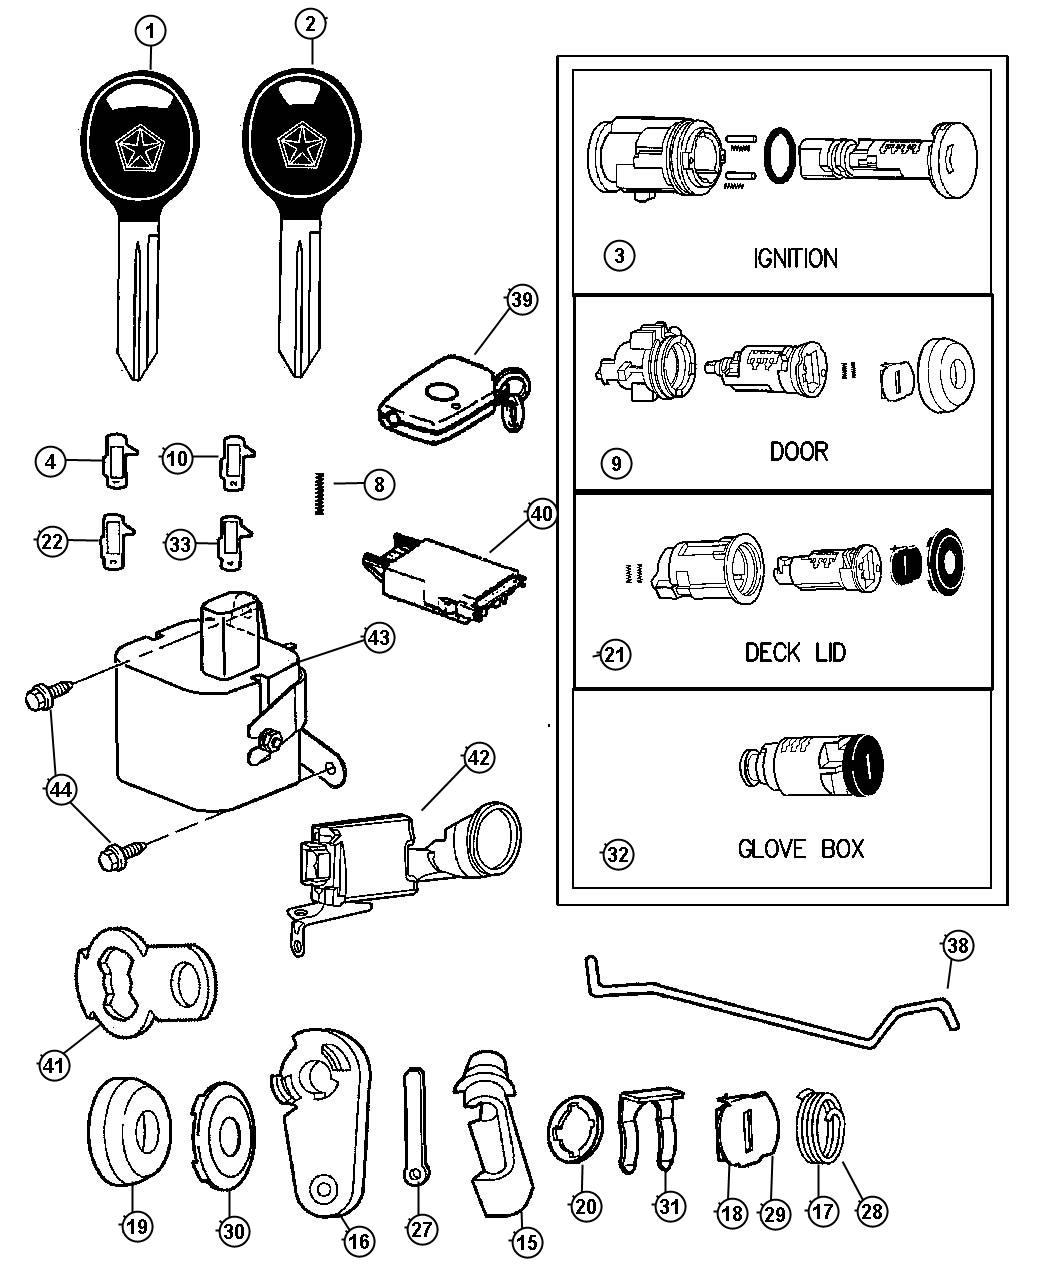 1999 dodge ram ignition switch wiring diagram polaris sportsman 400 chrysler parts auto warehouse autos post